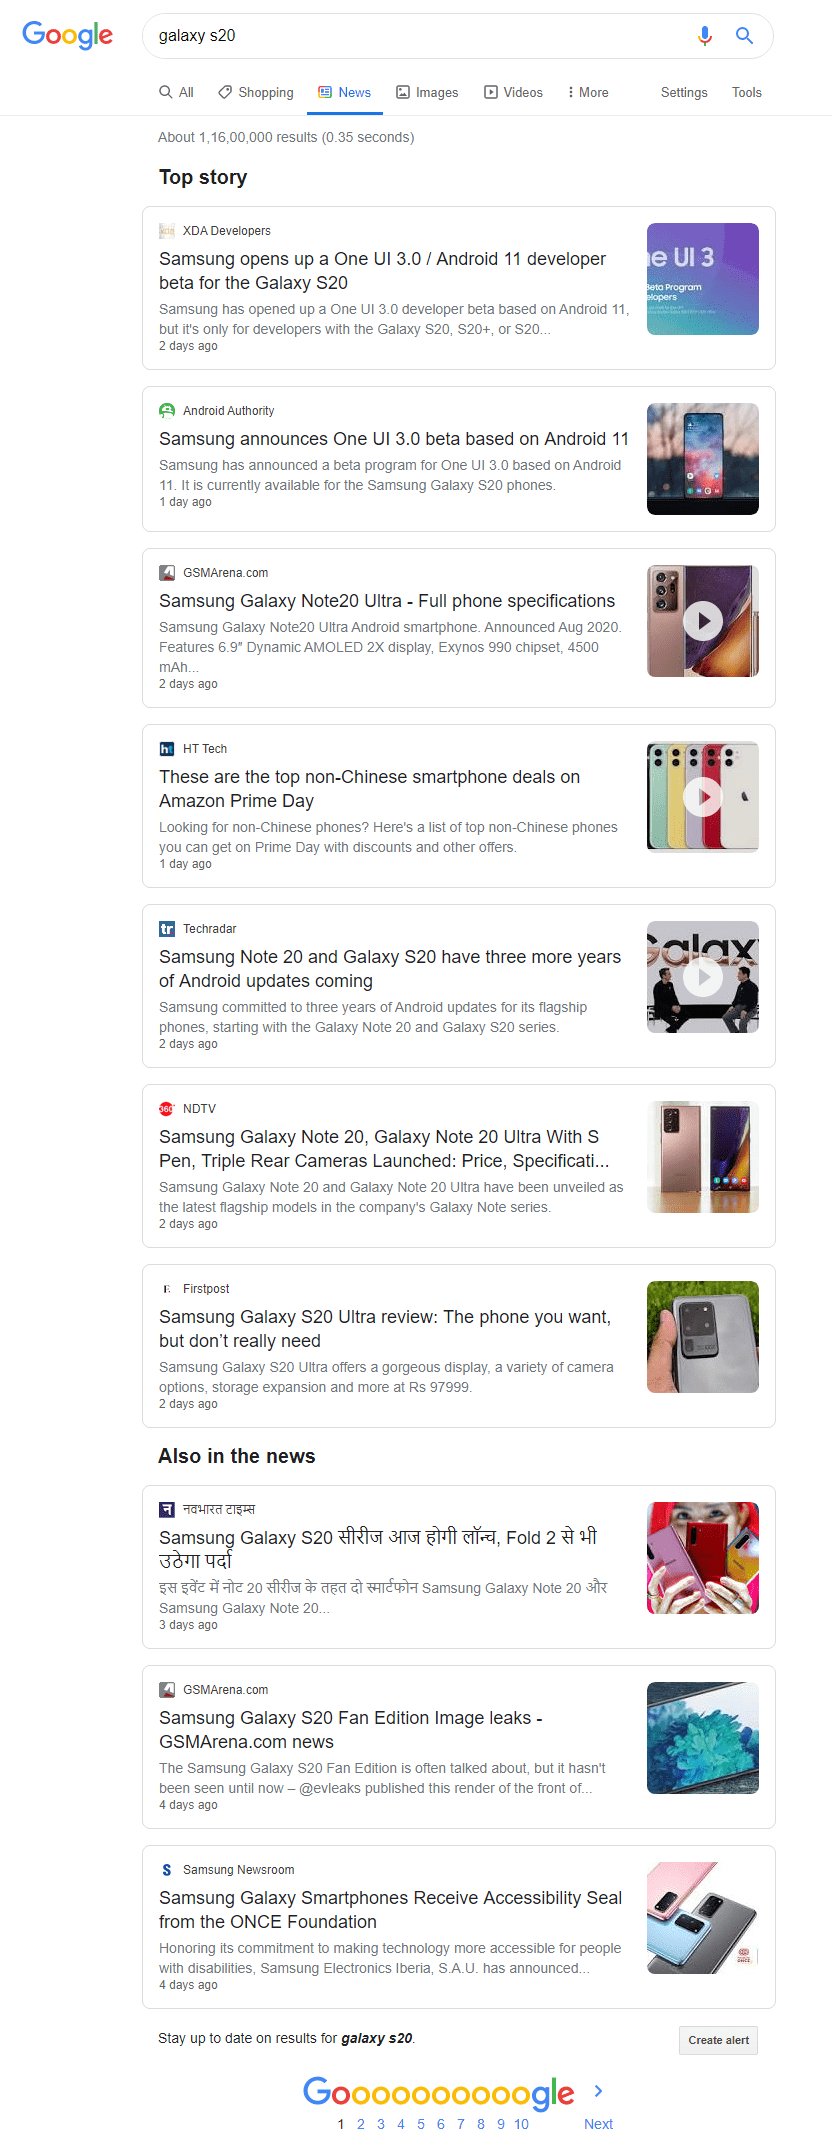 Google testing enhanced search results on the news tab with headings